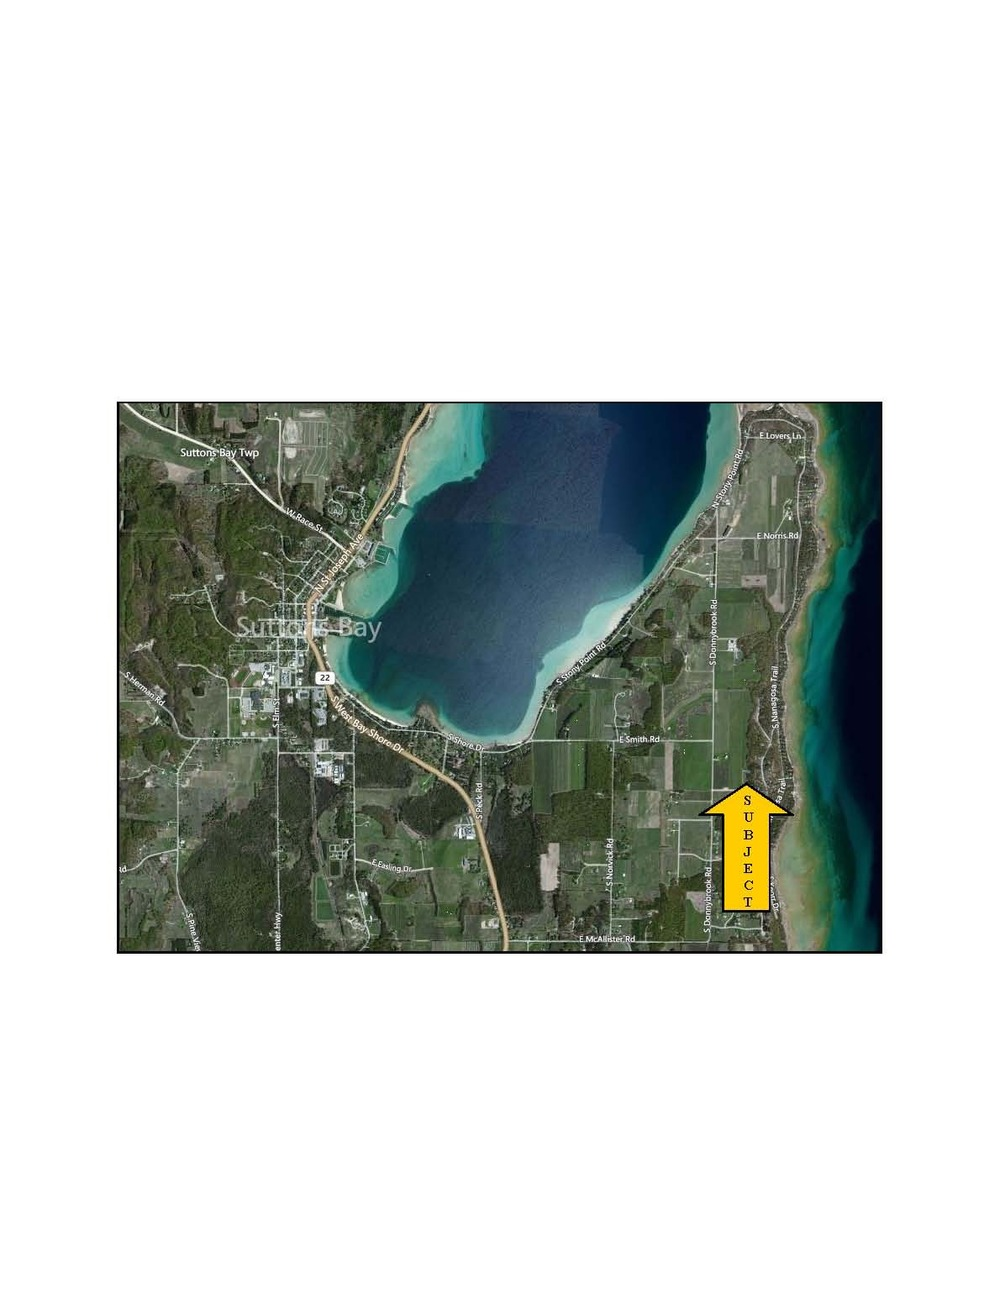 s celtic ln suttons bay, leelanau real estate for sale_page_04.jpg